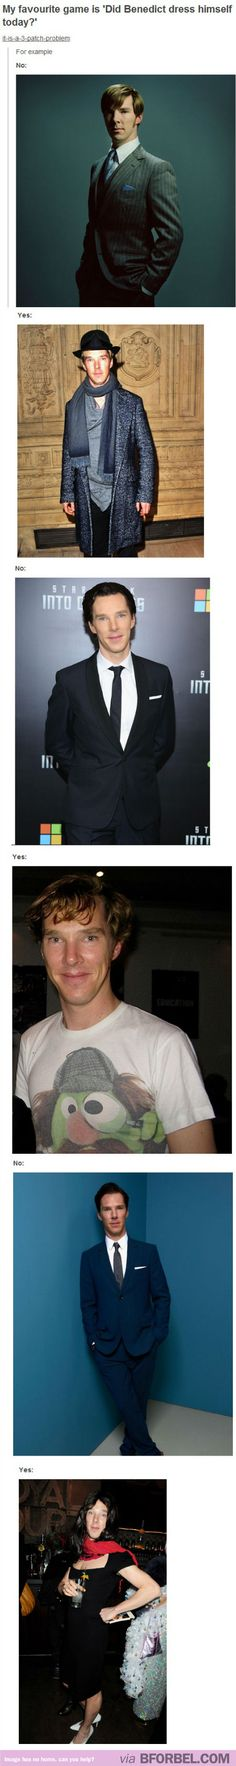 How To Know If Benedict Cumberbatch Dressed Himself Today…